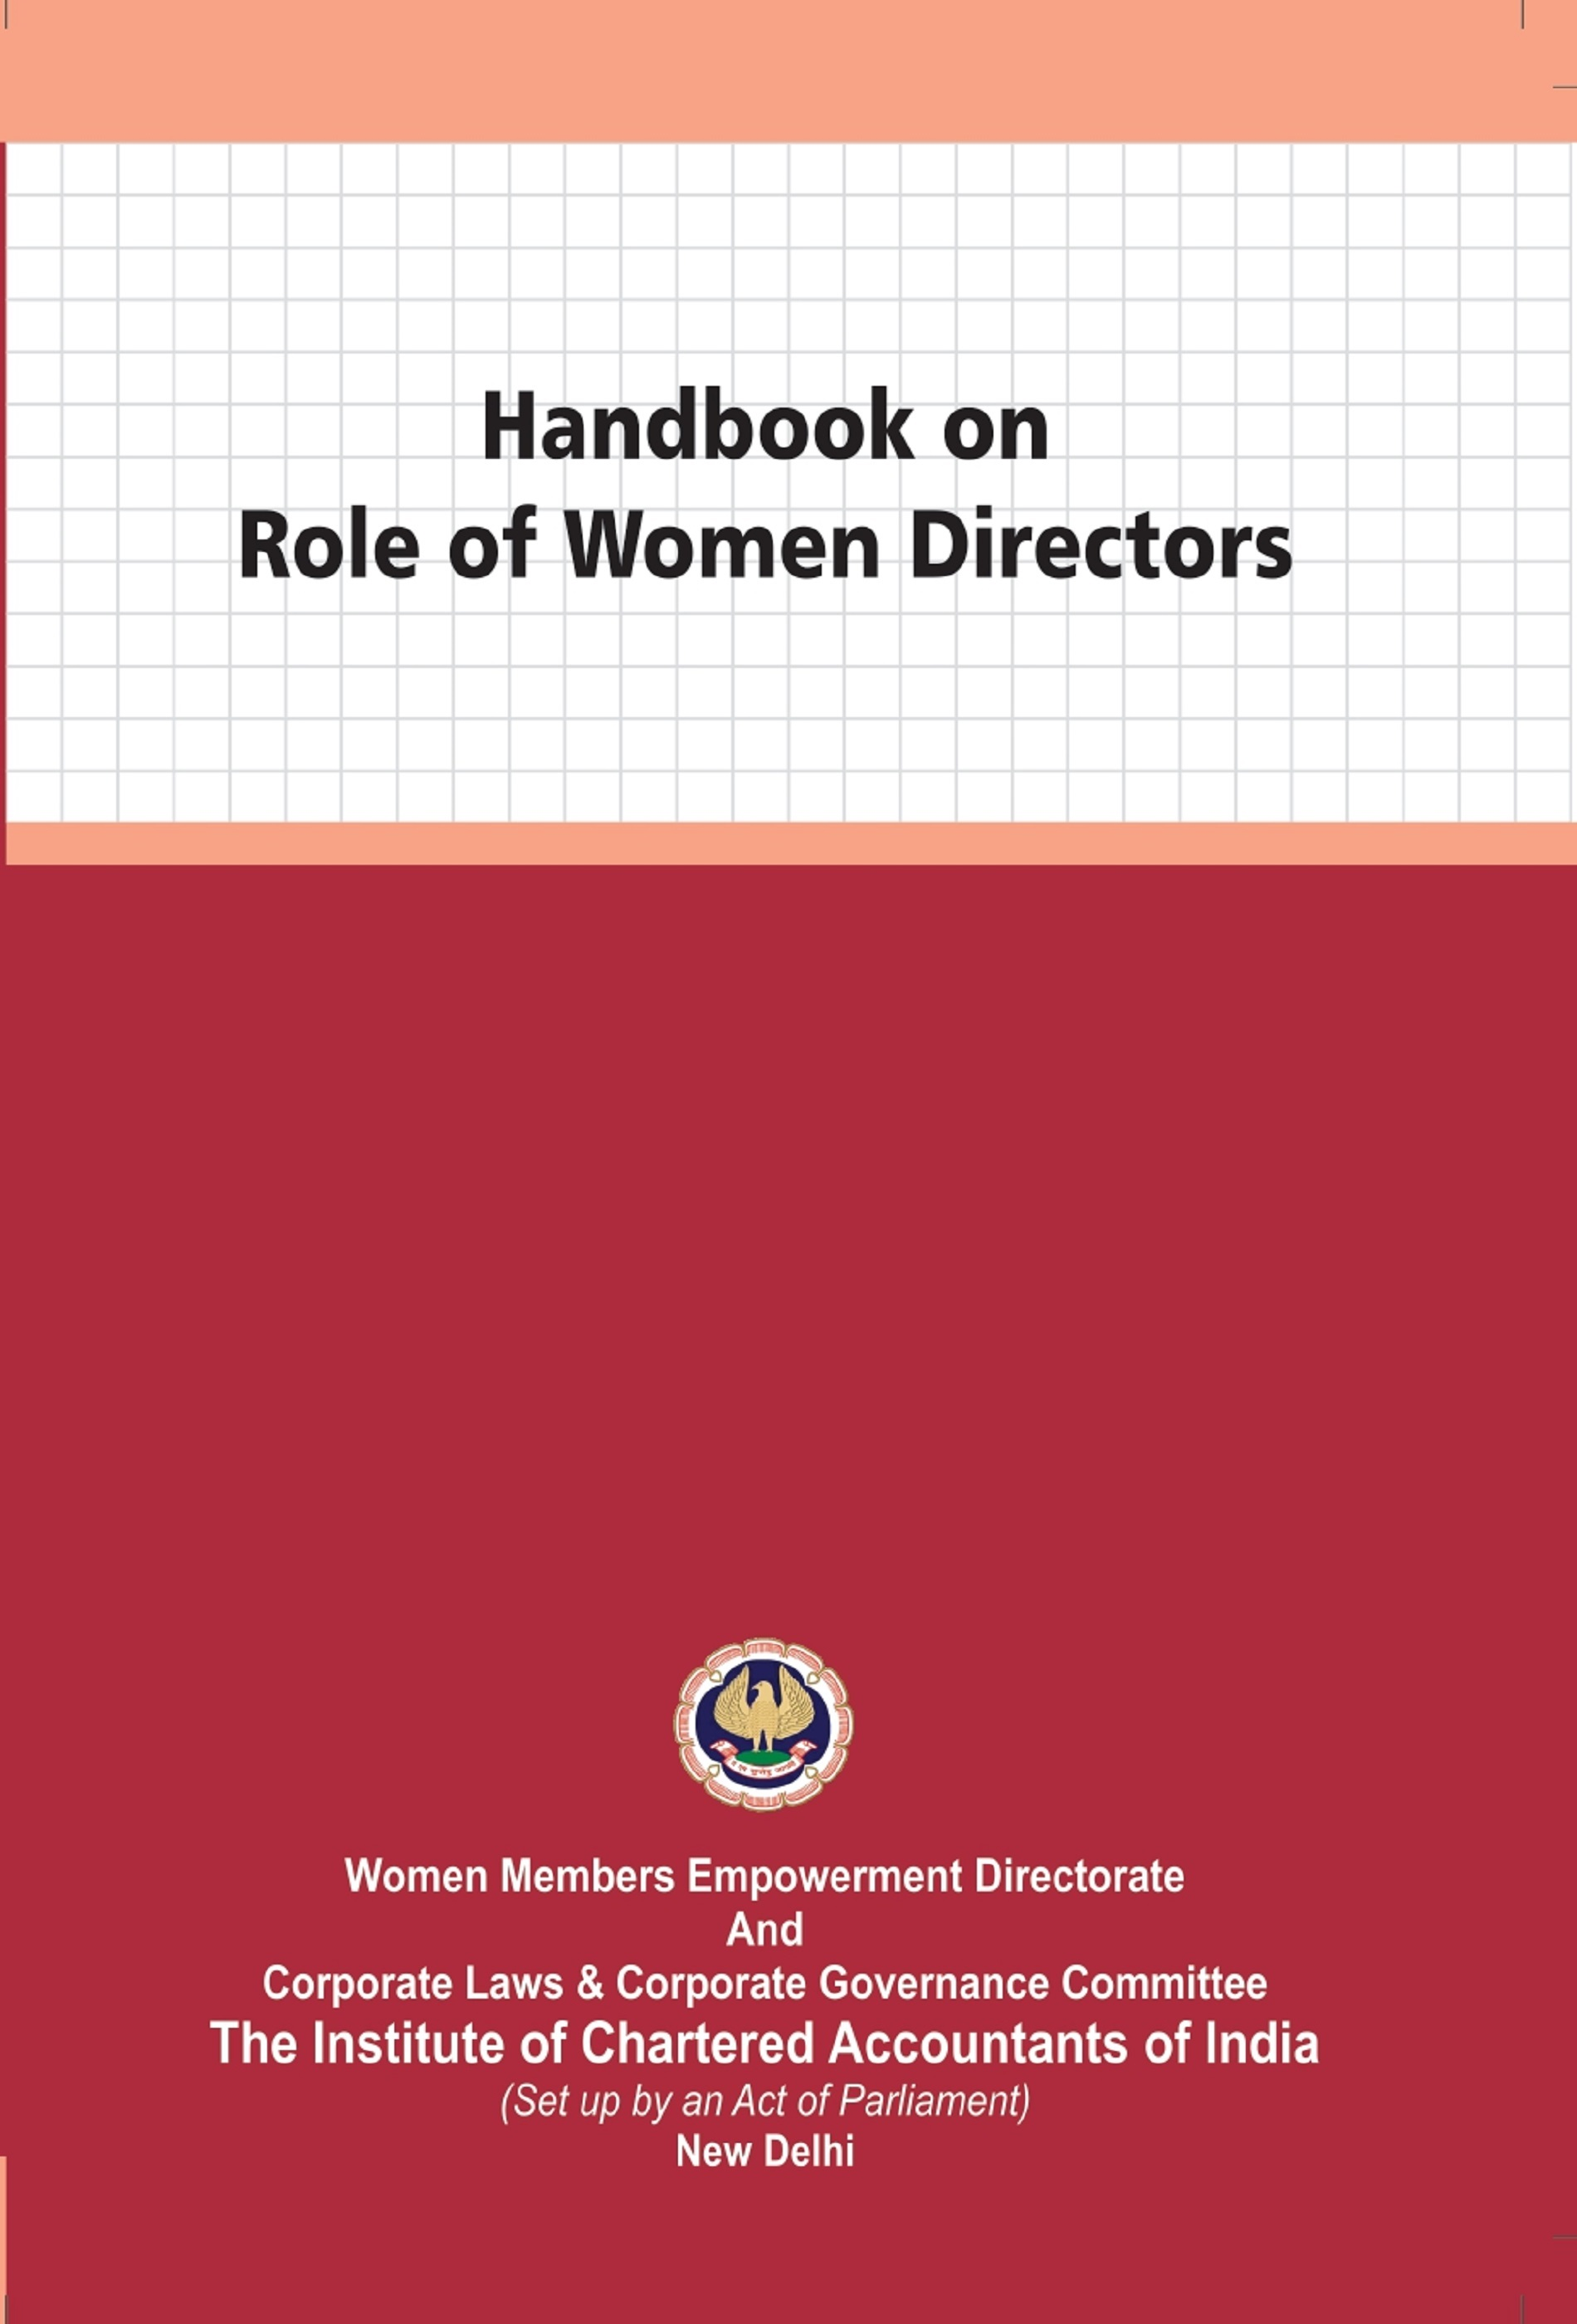 Handbook on Role of Women Directors (January, 2021)